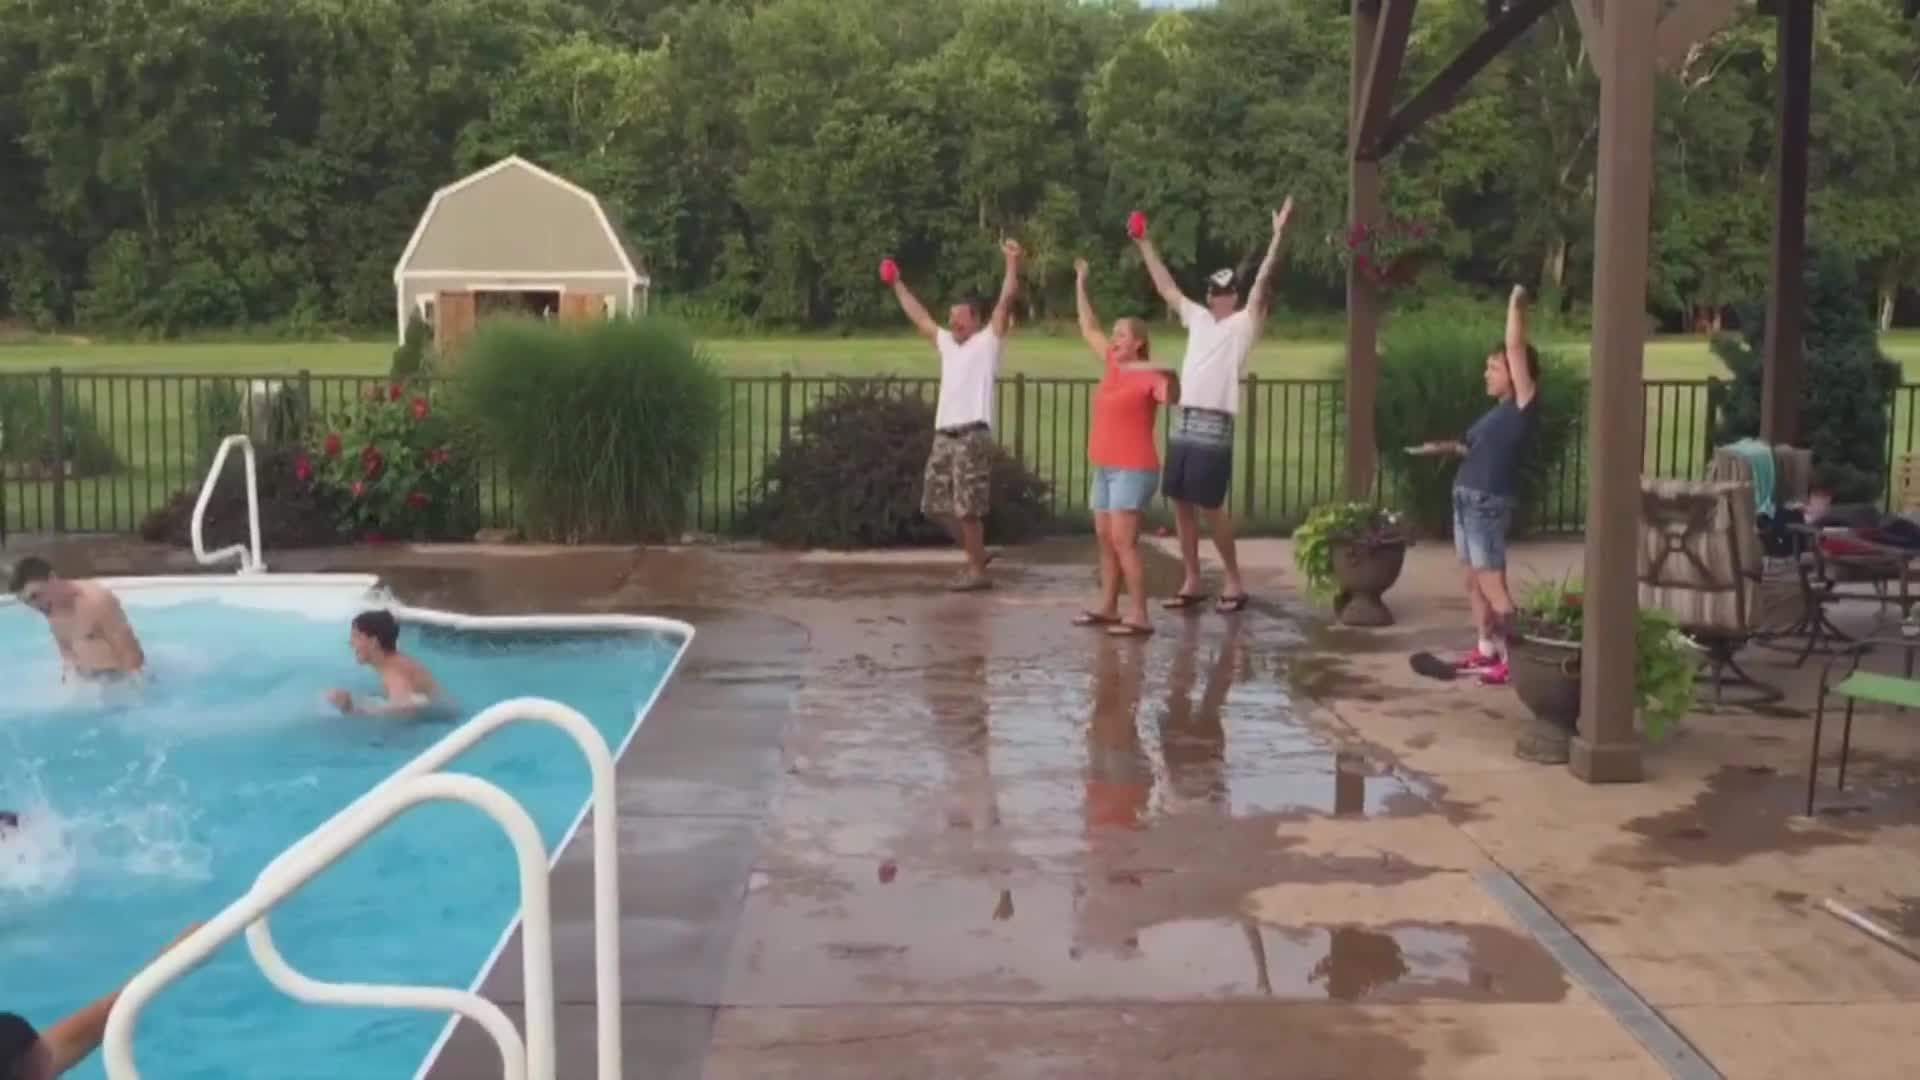 Amazing pool basketball trick shot rumble - Awesome swimming pool trick shots ...